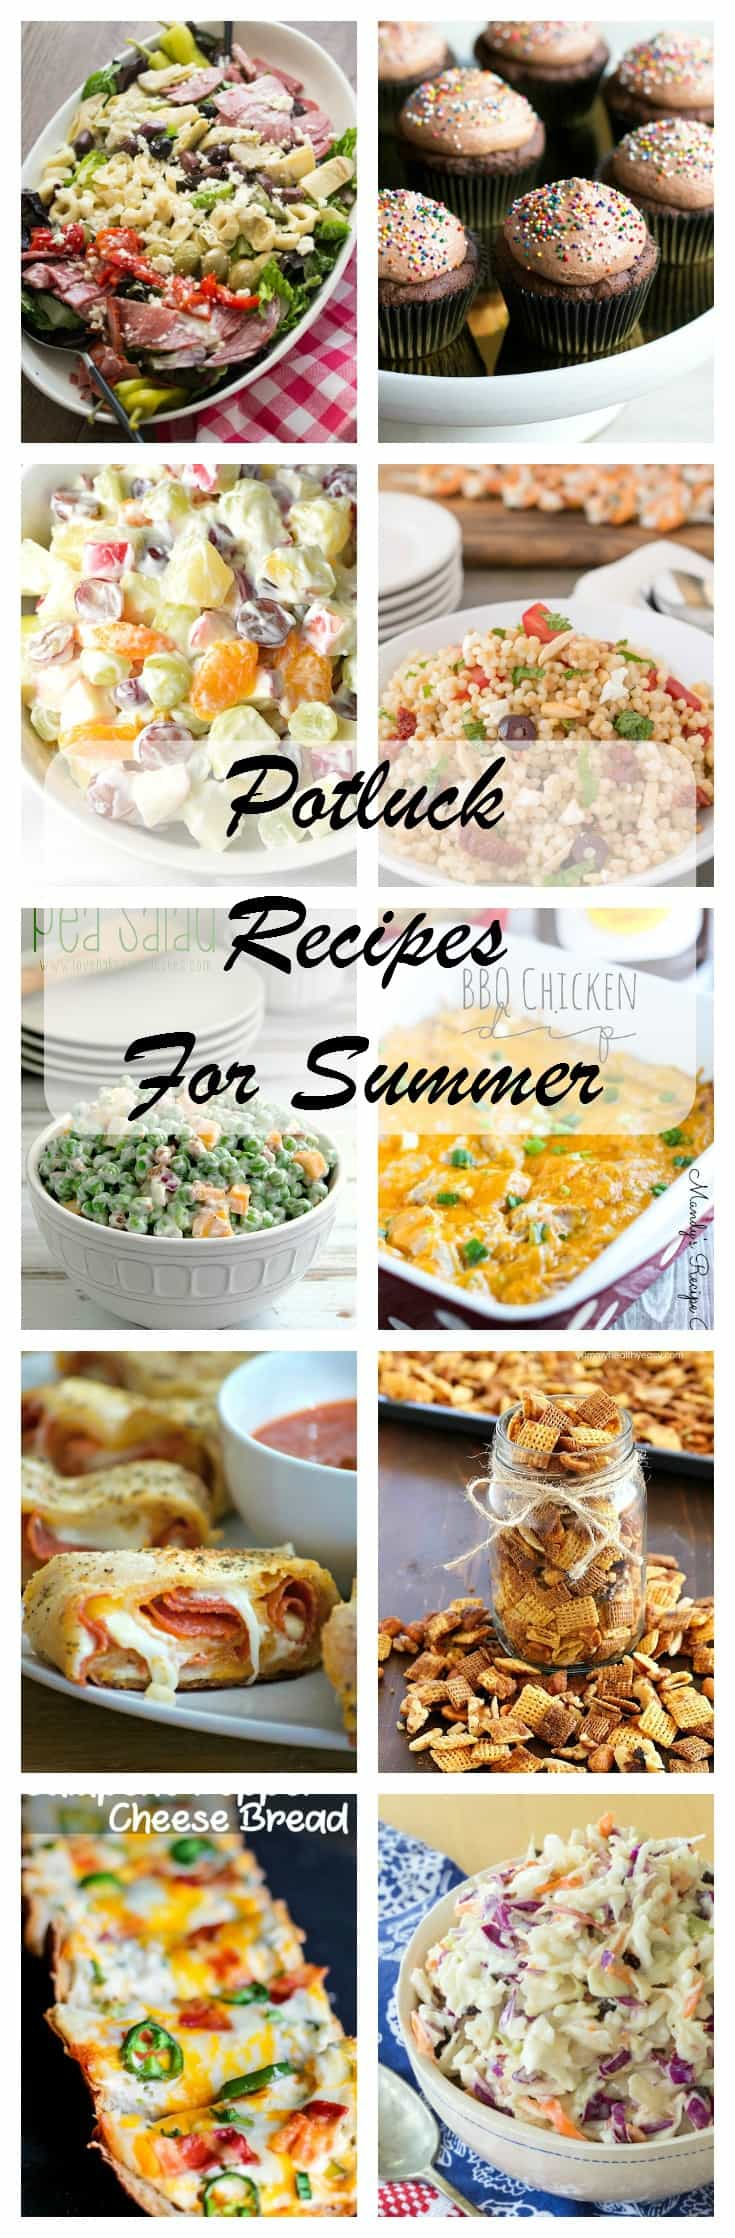 These Summer Potluck Recipes, from salads and wraps to dips and desserts, are dishes to please a hungry crowd and ones you'll make again and again.